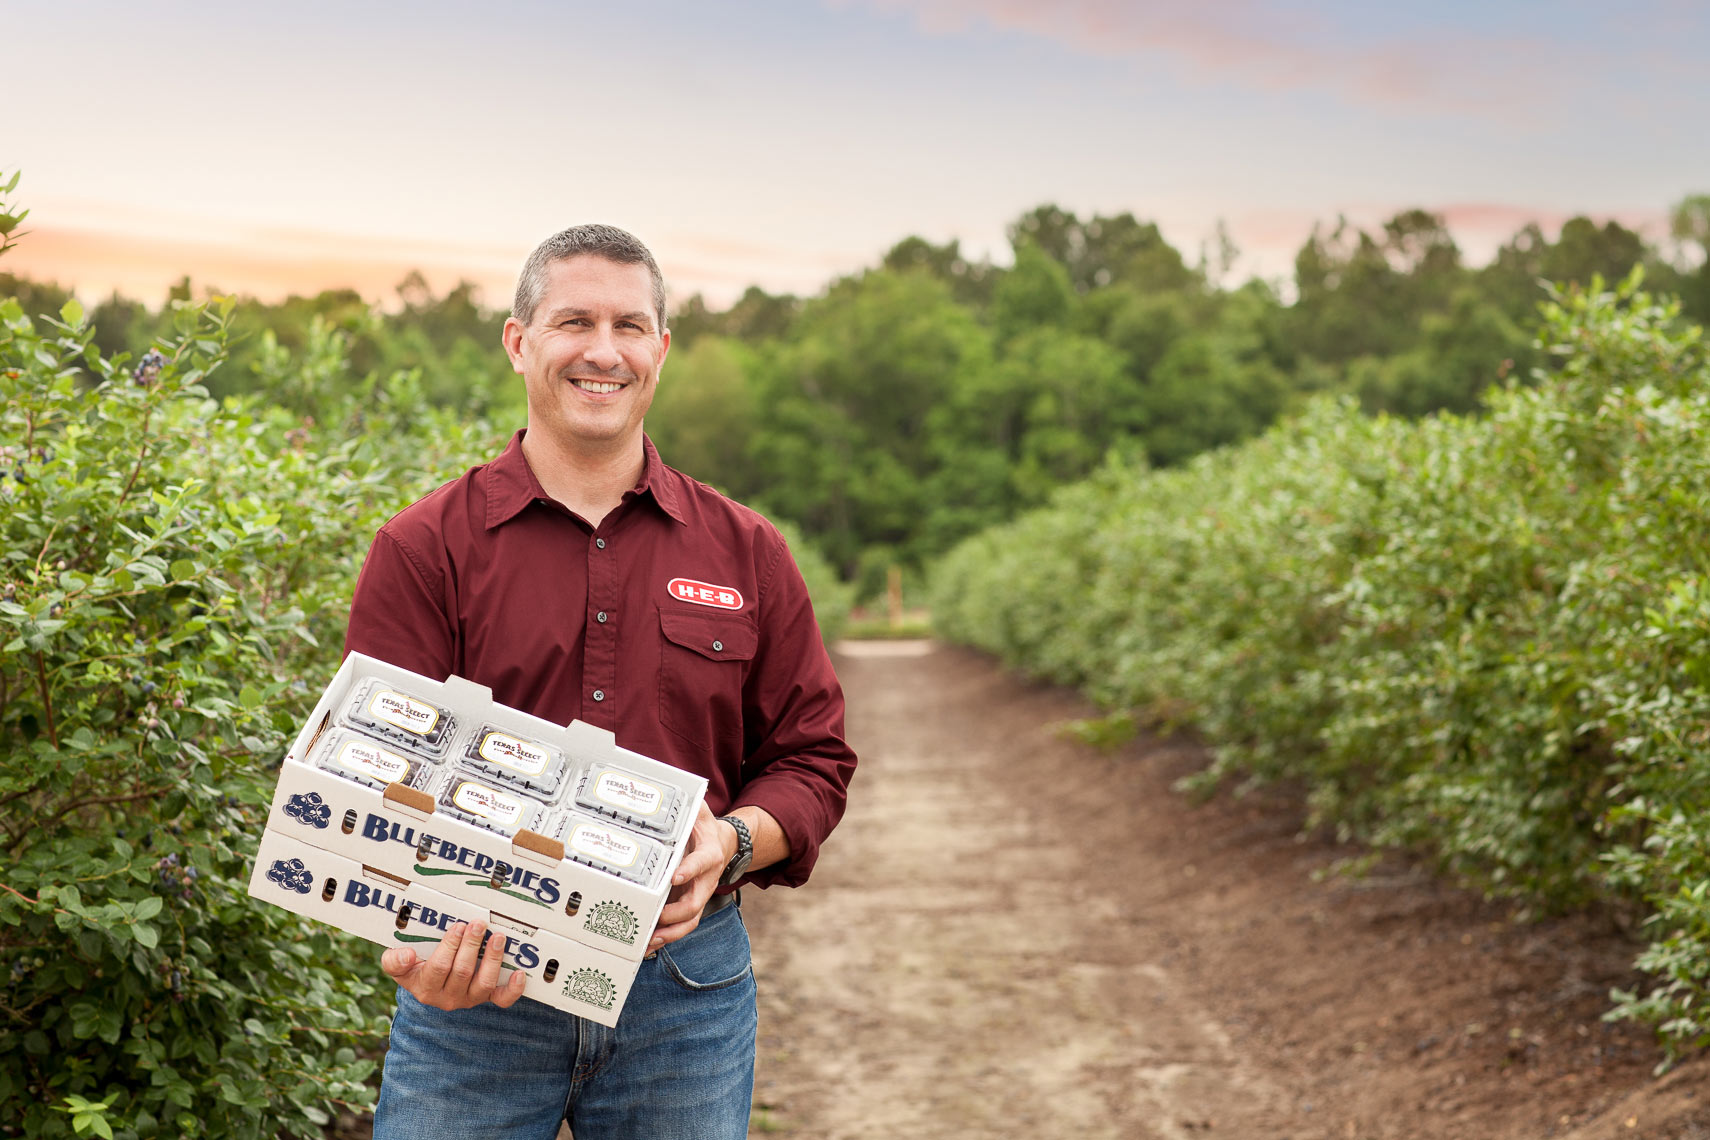 heb-blueberries-produce-department-jason-risner-photography-8801